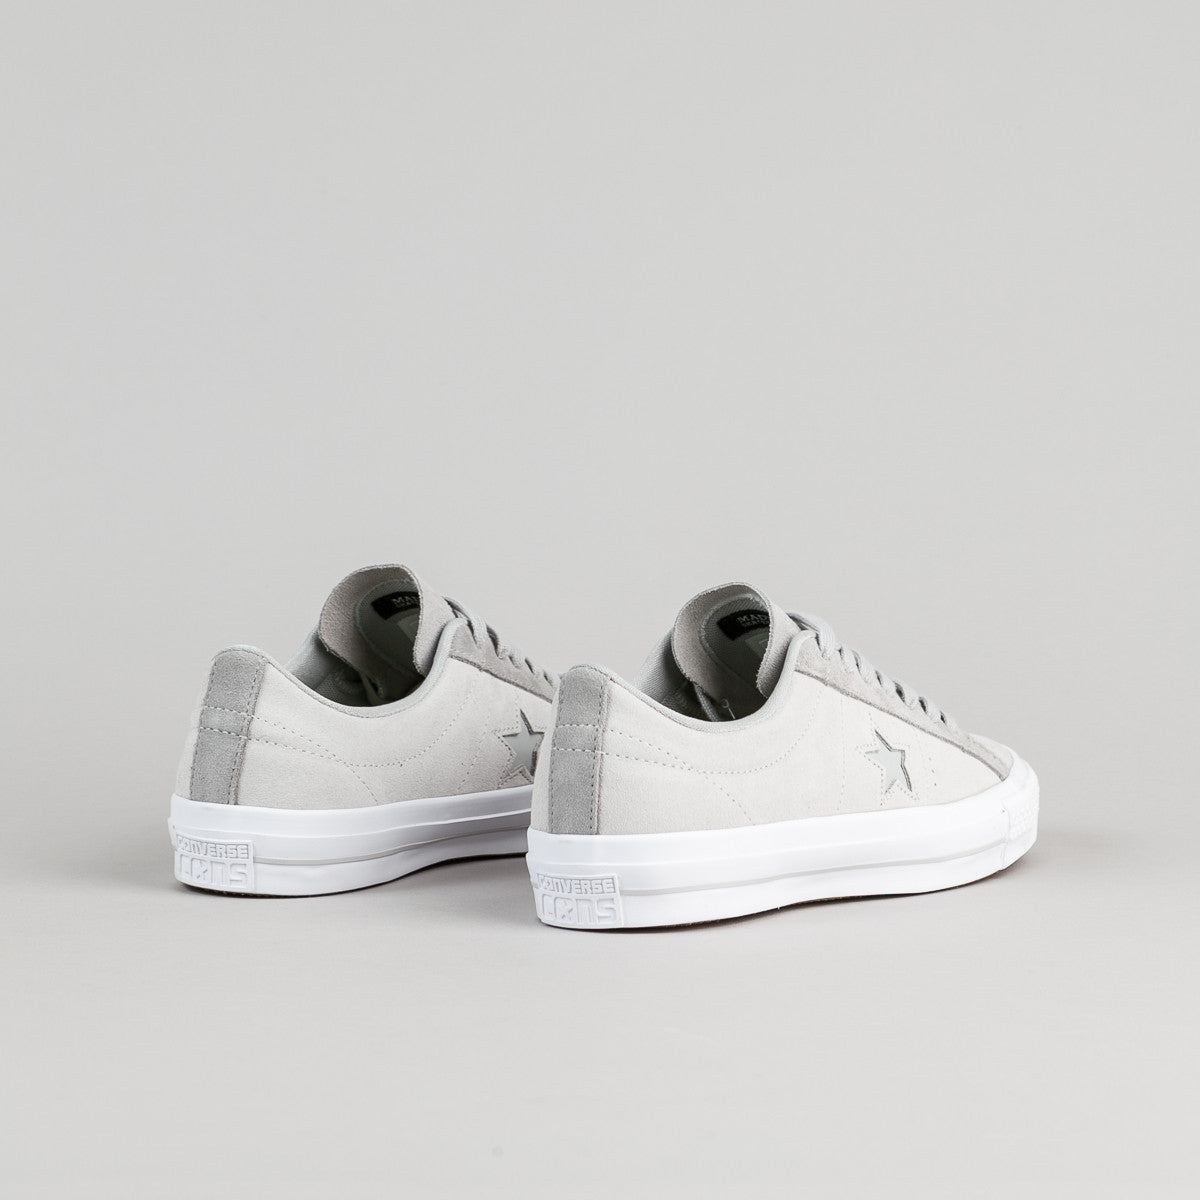 Converse One Star Pro OX Shoes - Mouse / Ash Grey / Dolphin